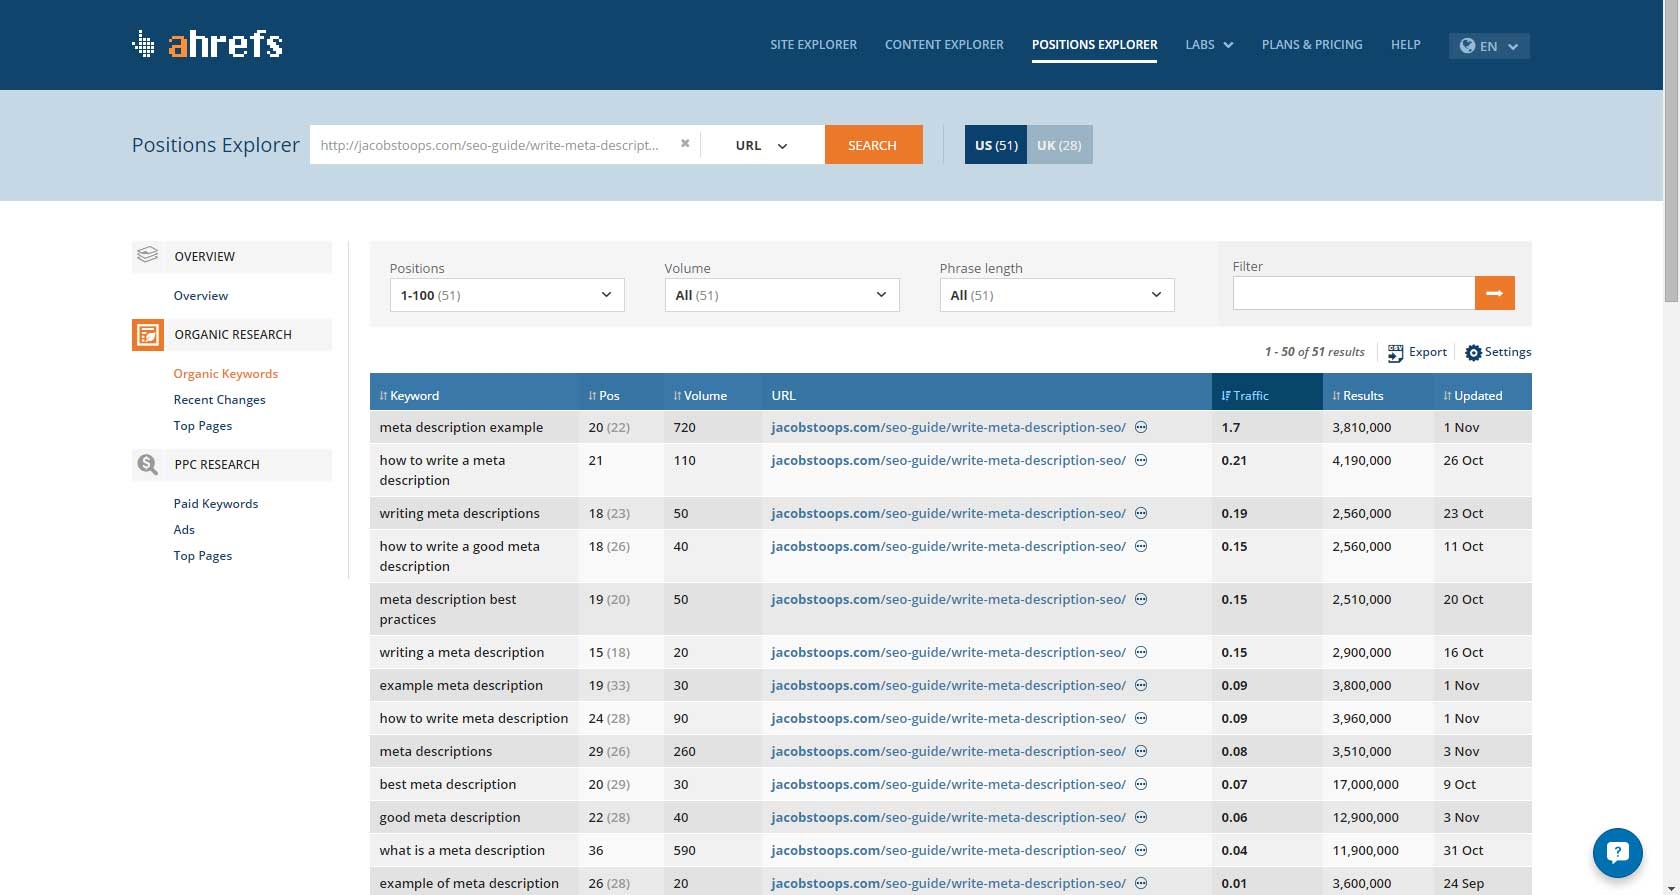 AHrefs review: Positions Explorer #4